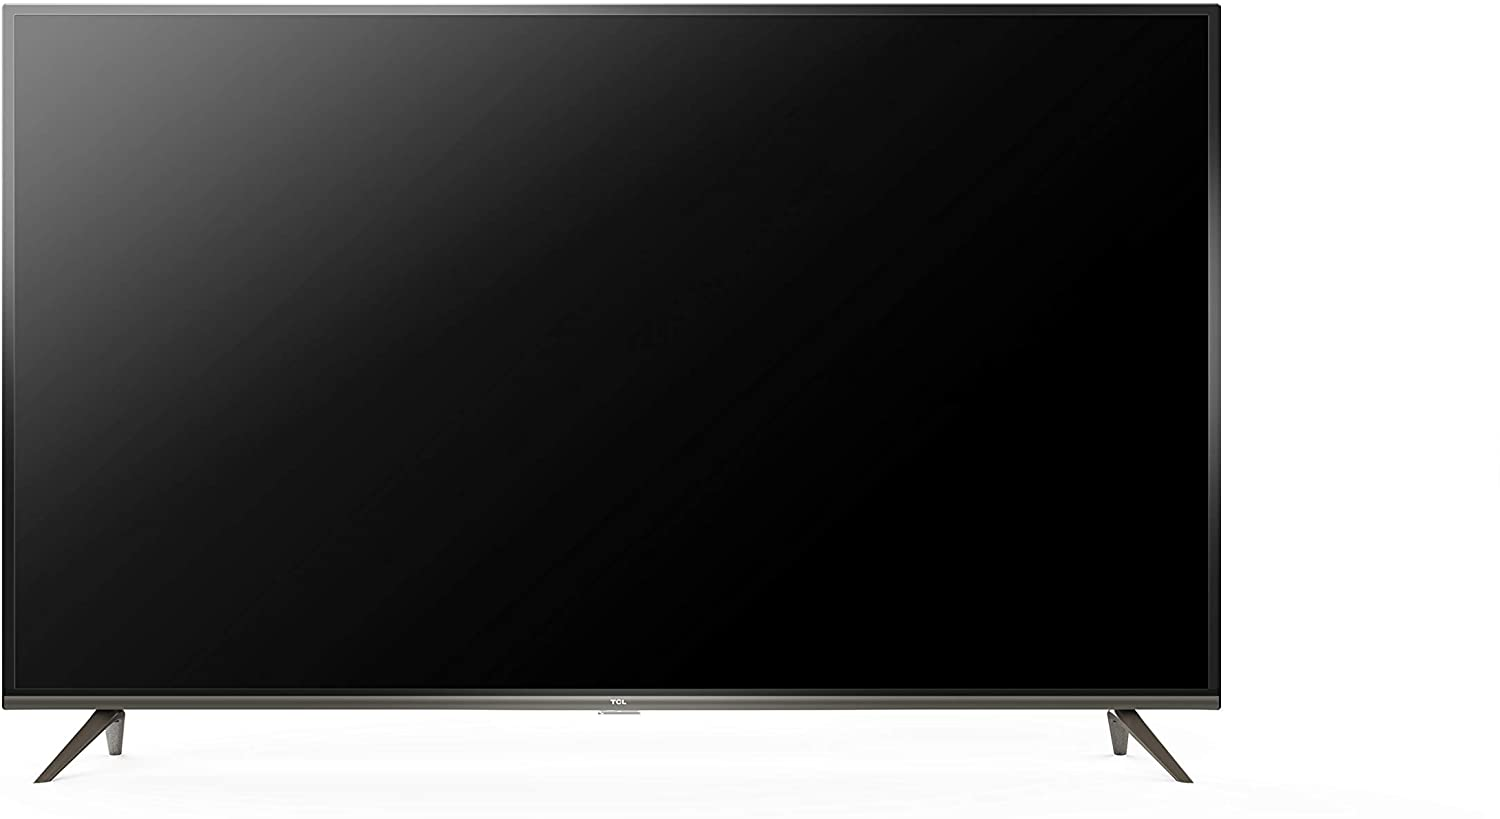 TCL 55-Inch 4K UHD Smart Android TV L55P8US Black